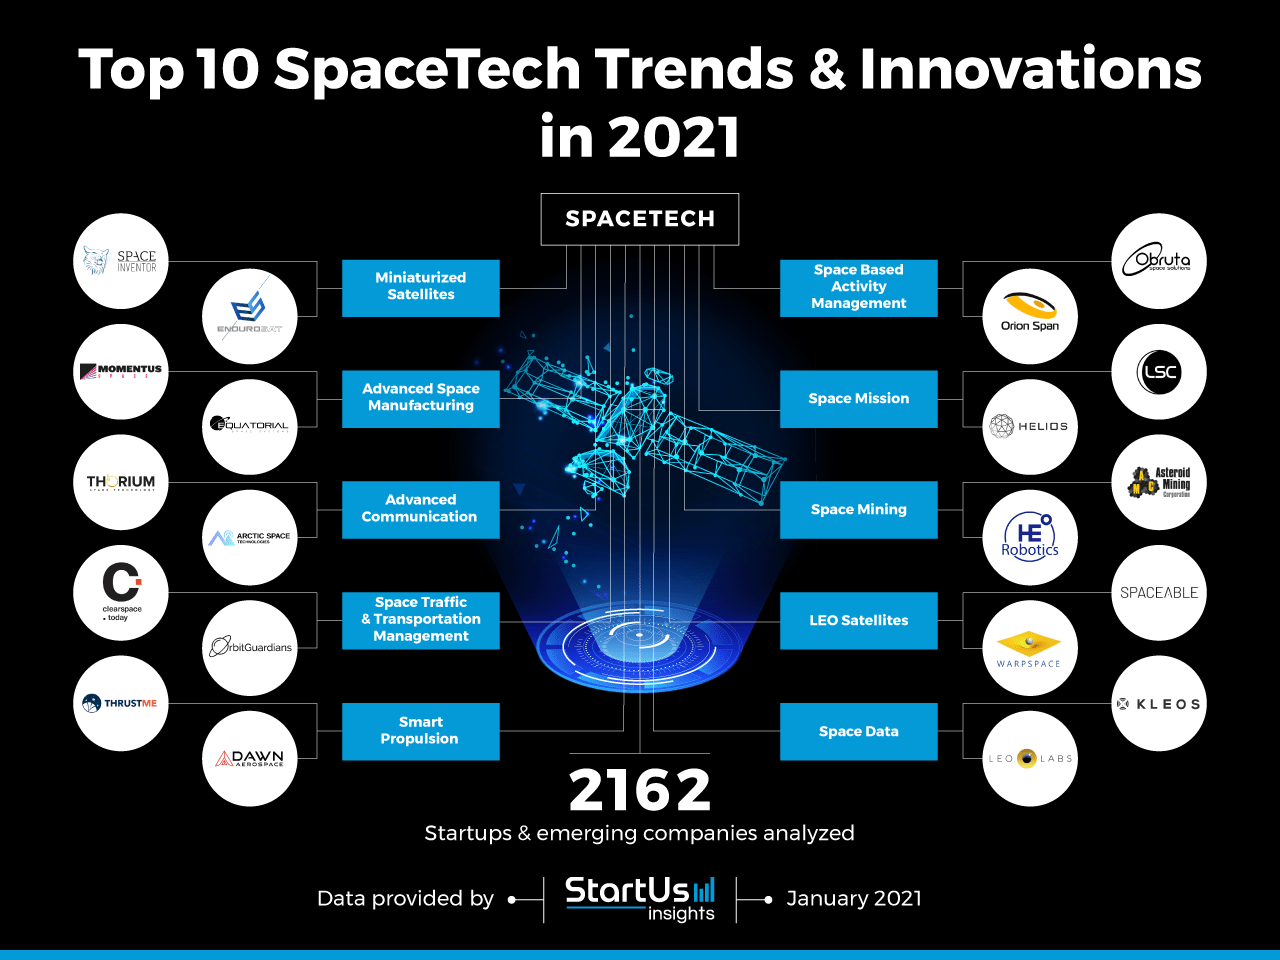 https://i2.wp.com/neoventures.net/wp-content/uploads/2021/02/SpaceTech-Startups-TrendResearch2020-InnovationMap-StartUs-Insights-noresize.png?resize=1280%2C960&ssl=1